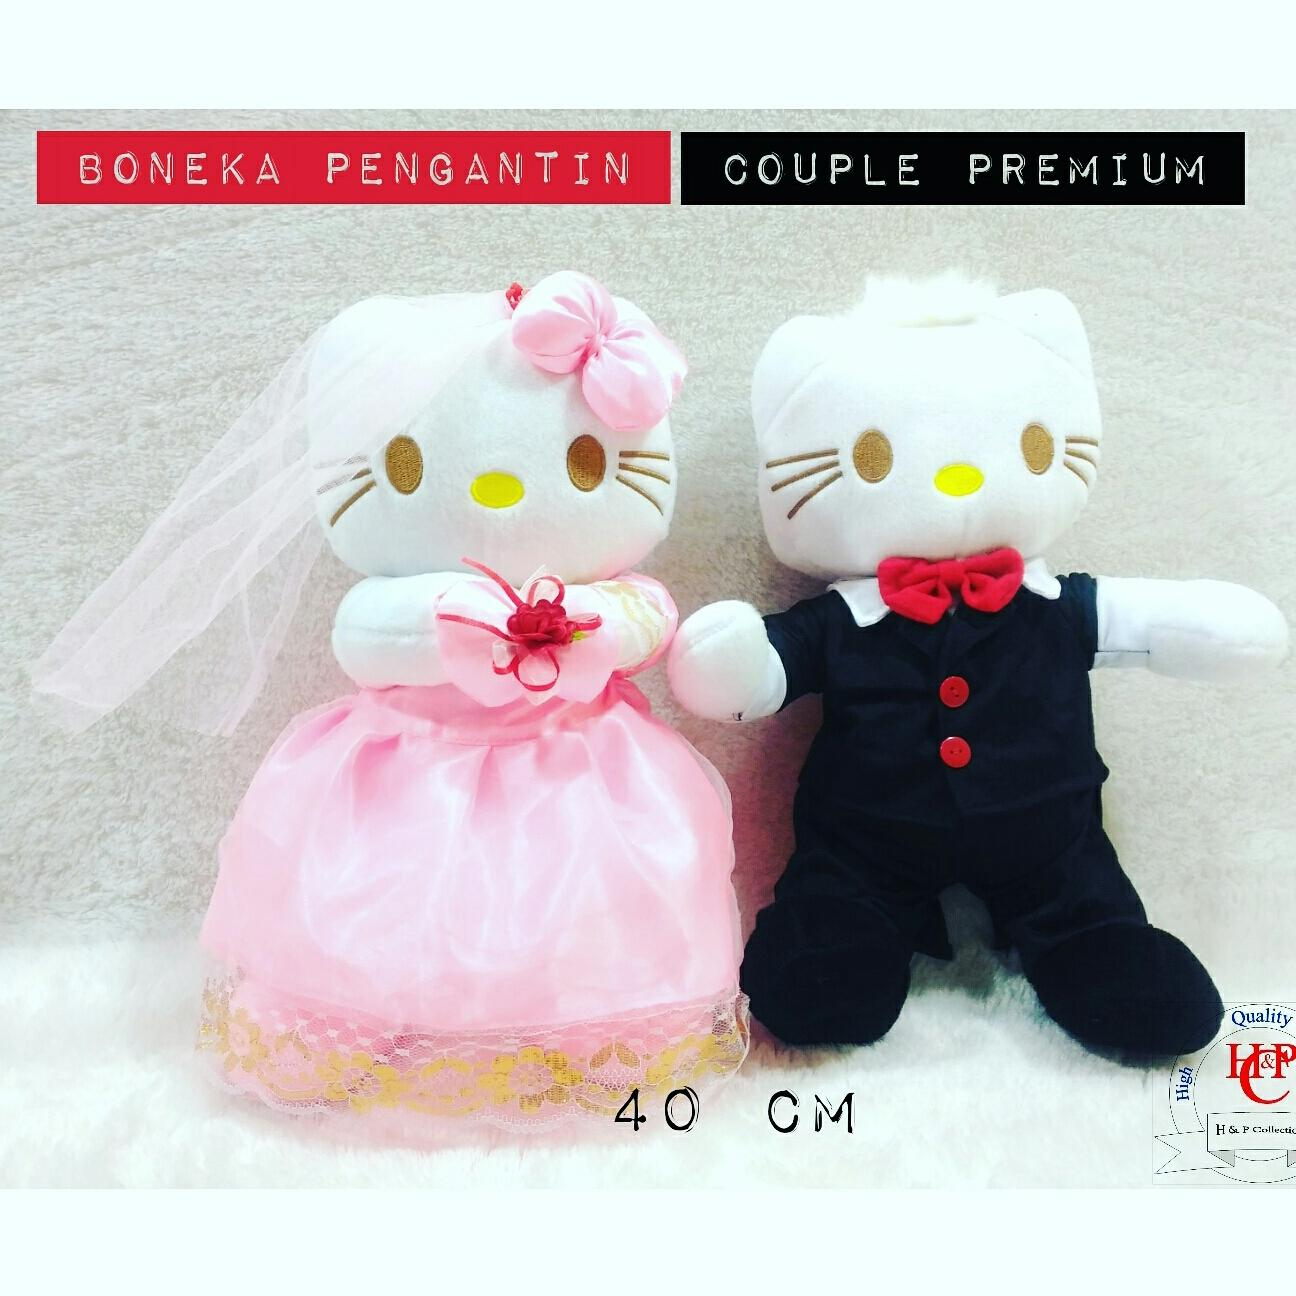 Boneka pengantin hello kitty wedding doll premium